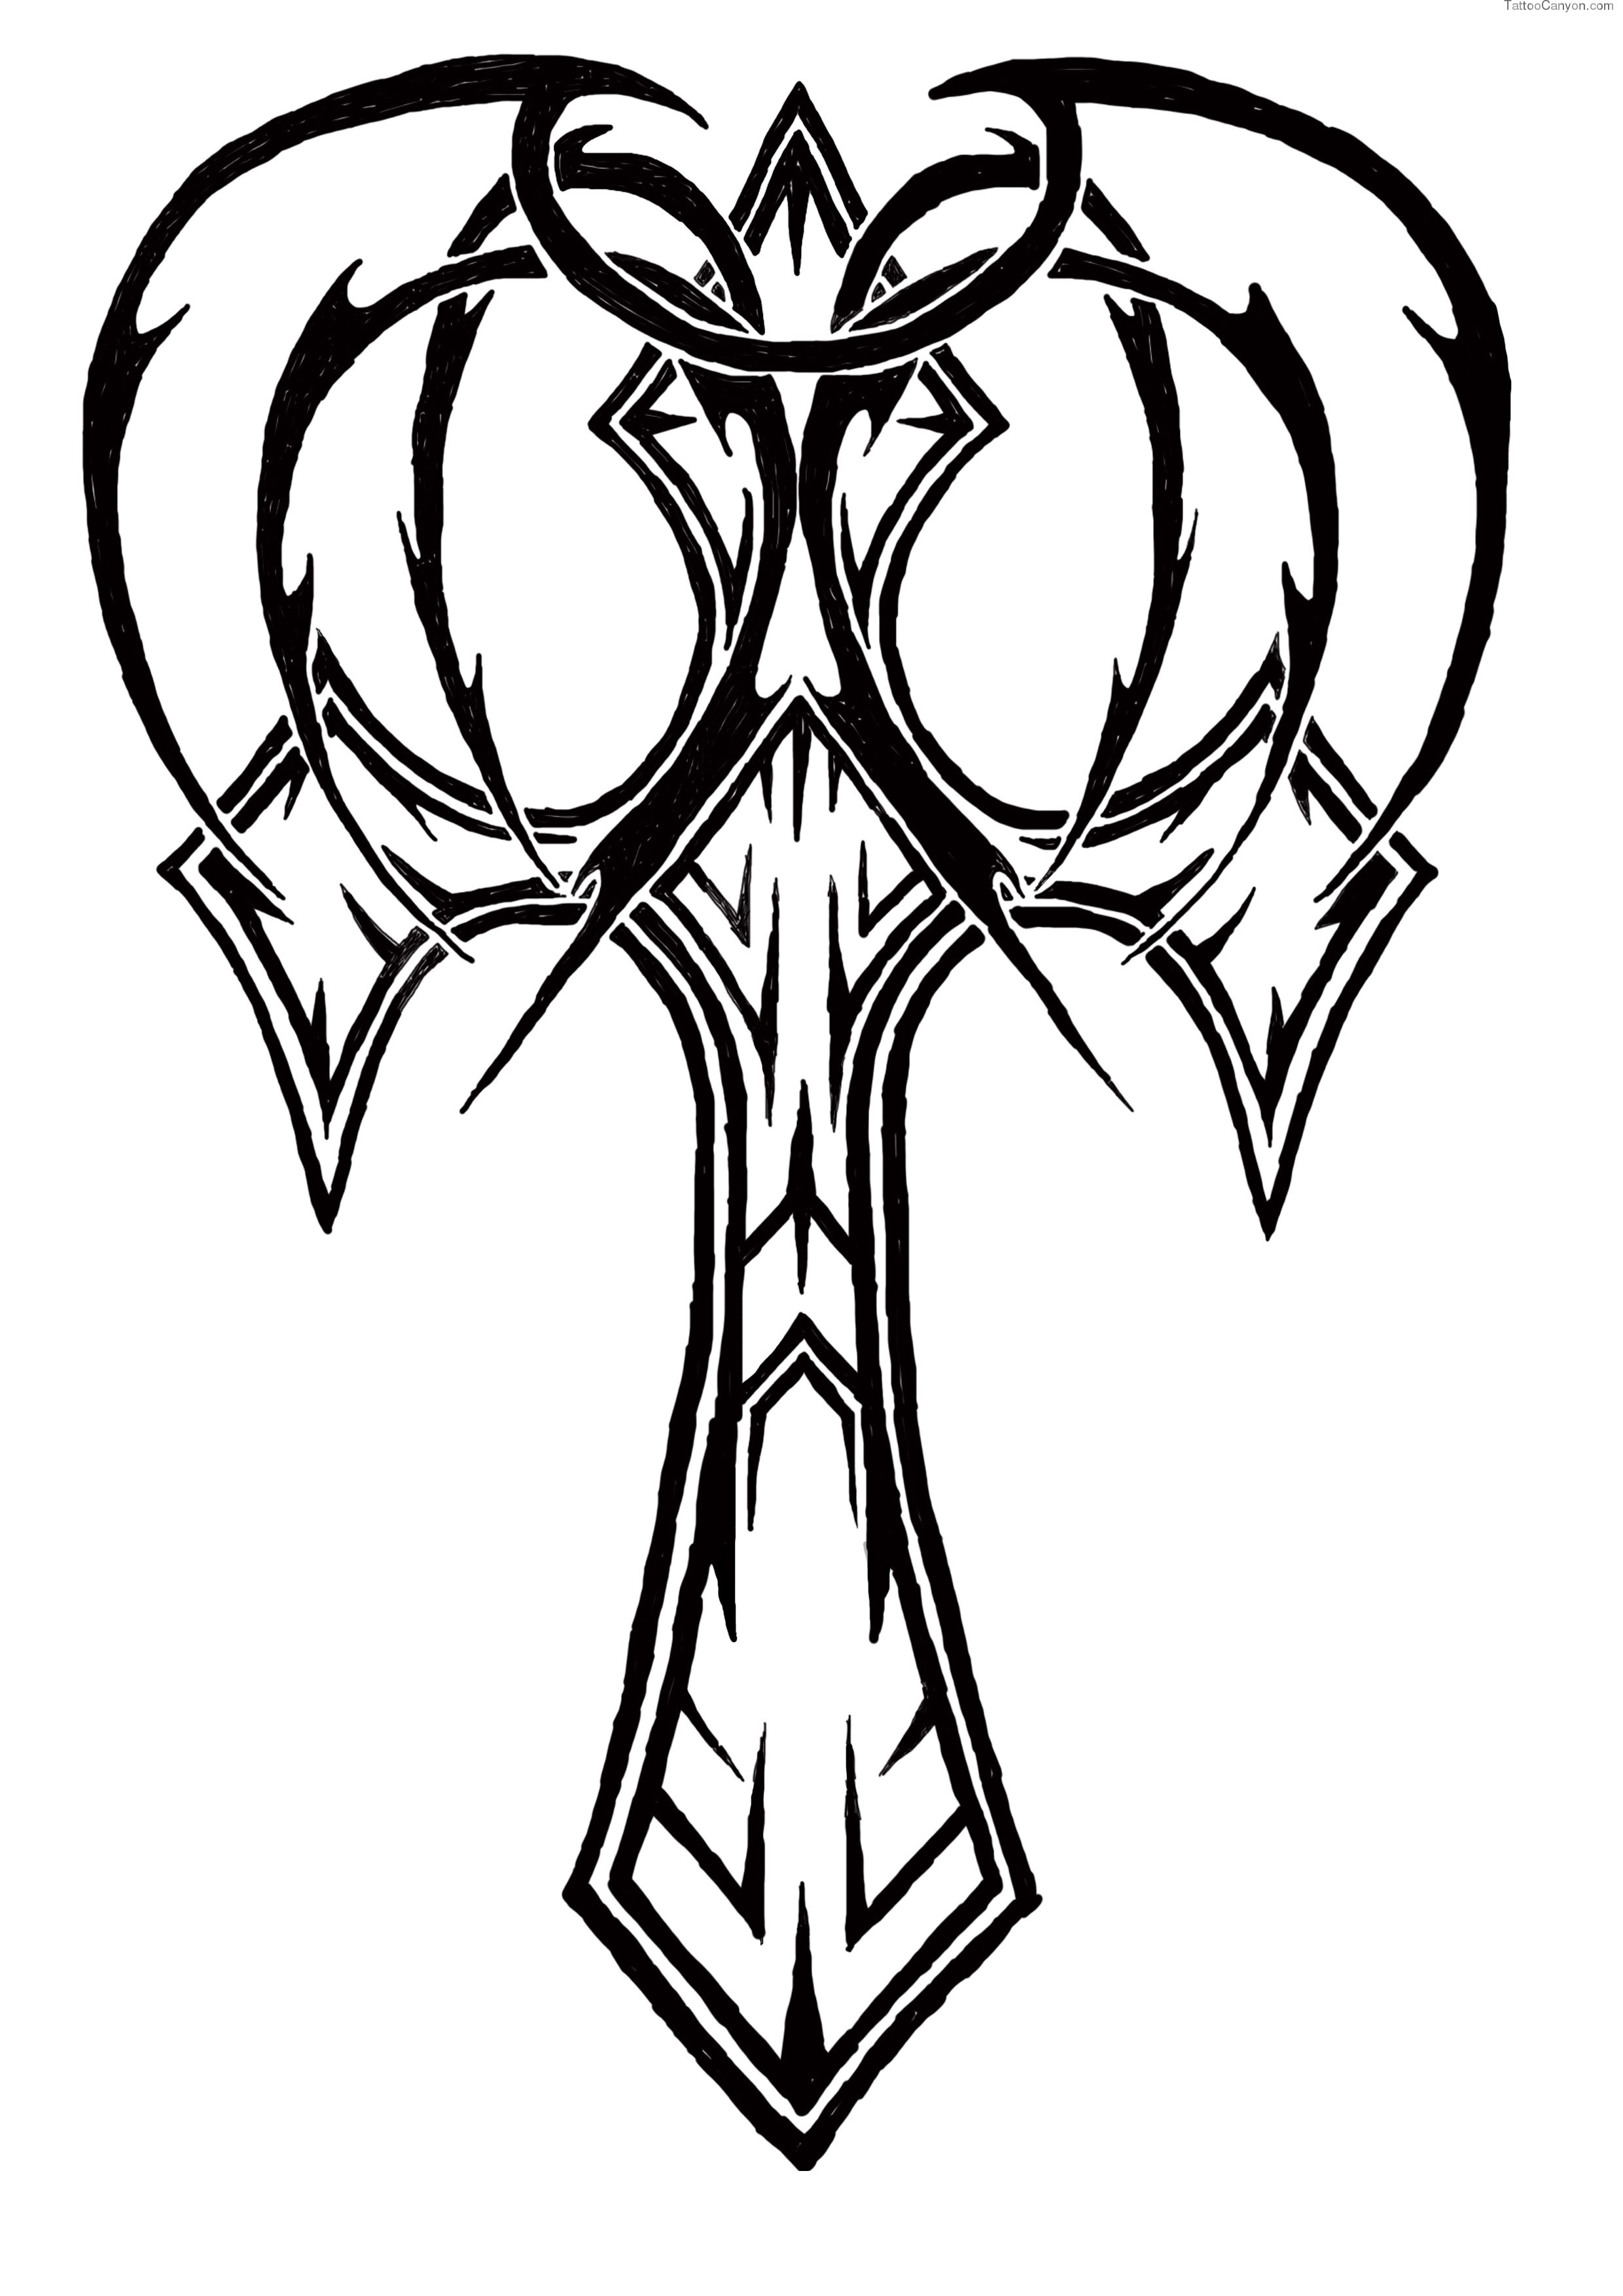 2480x3508 D Cross Drawing At Com Free For Personal Use On Cross Tattoos